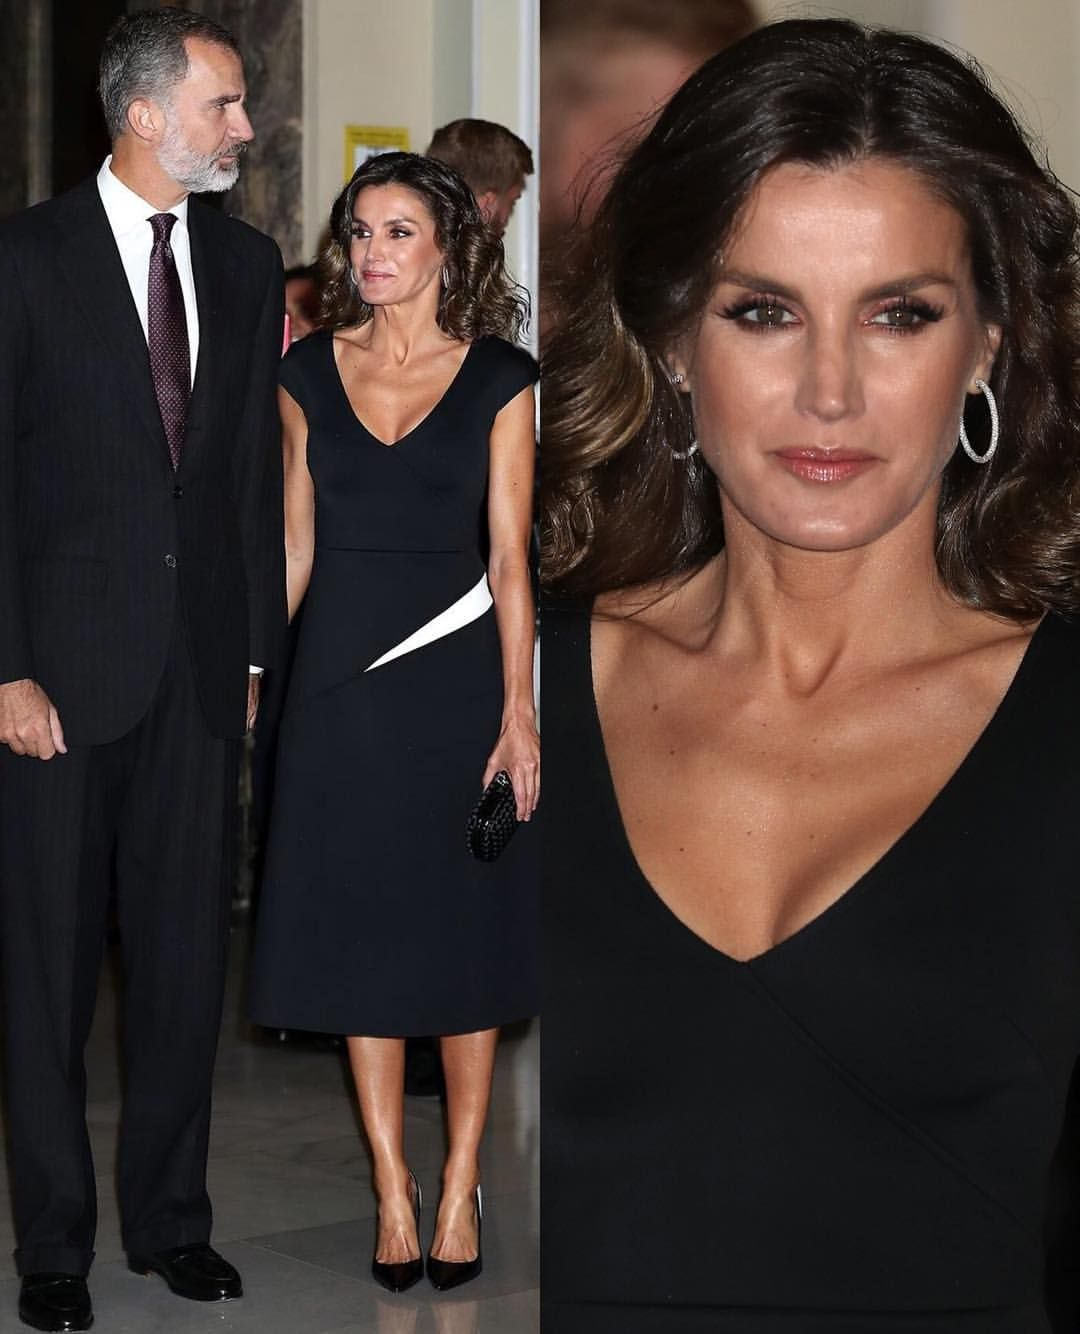 Winner Fashion Journalist Of The Year: #New King Felipe And Queen Letizia Of Spain Attended The